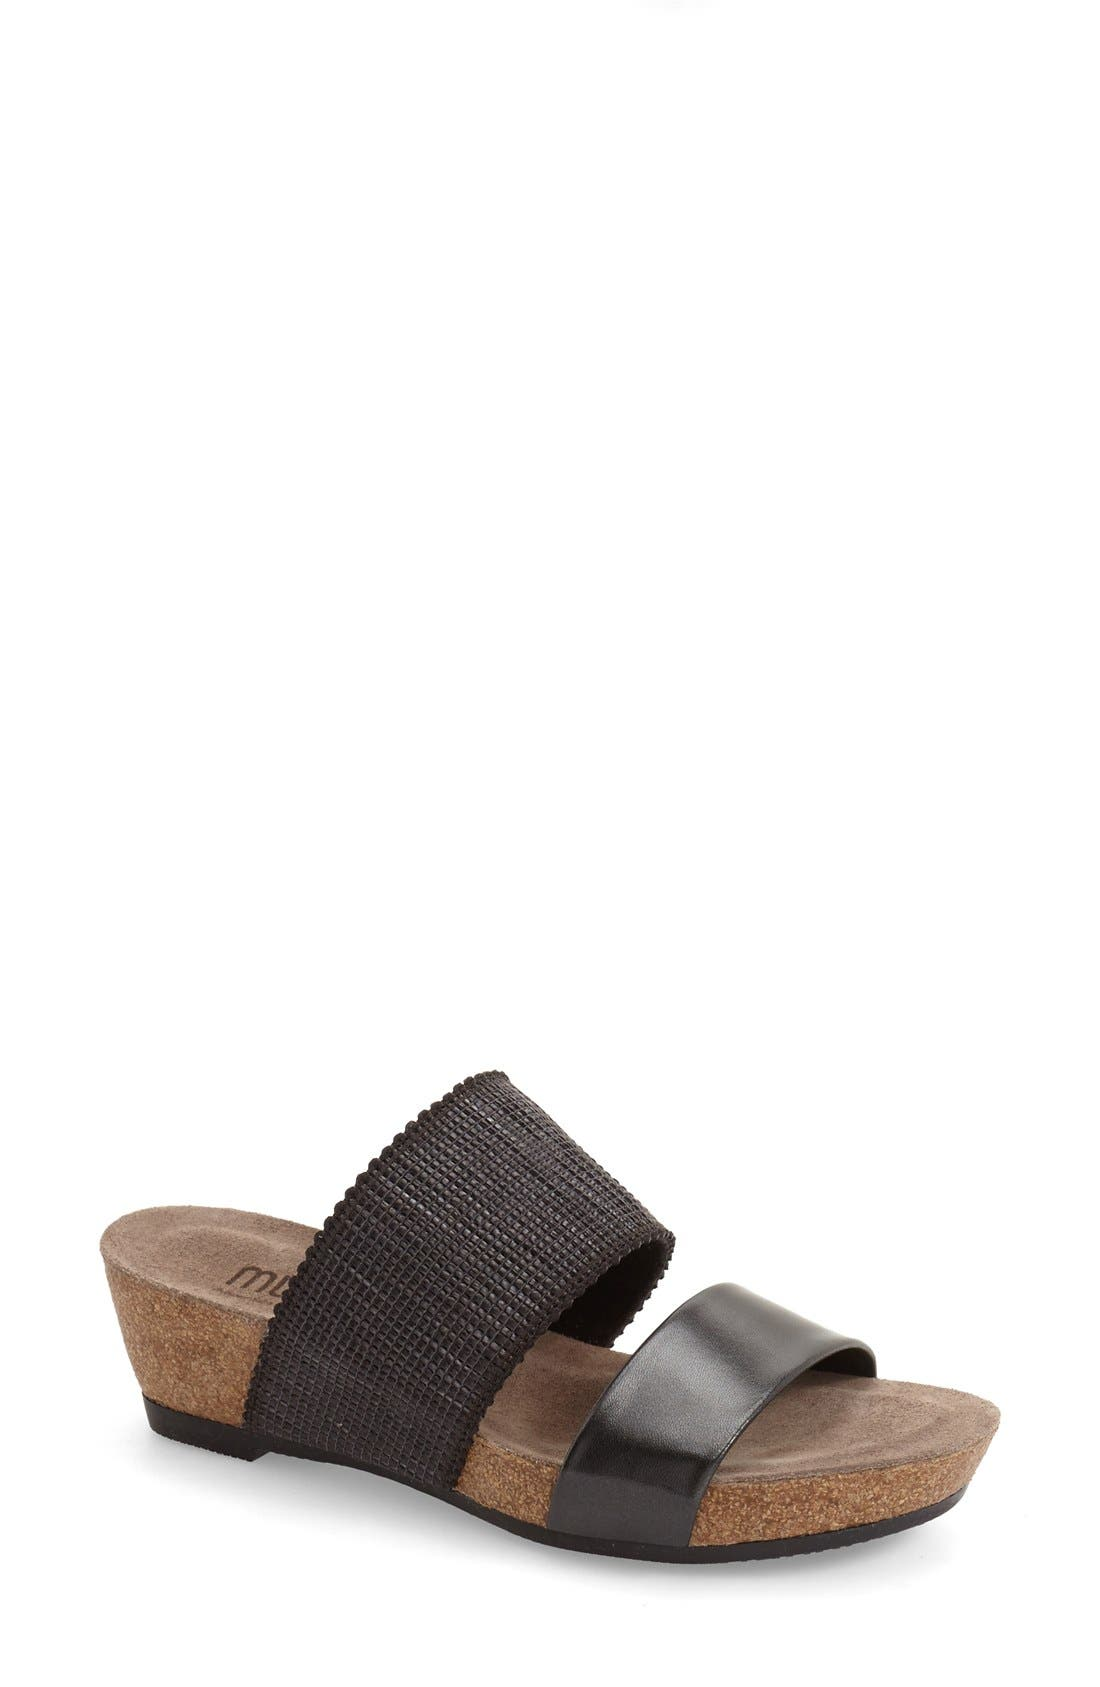 MUNRO 'Riviera' Two Strap Slide Wedge Sandal